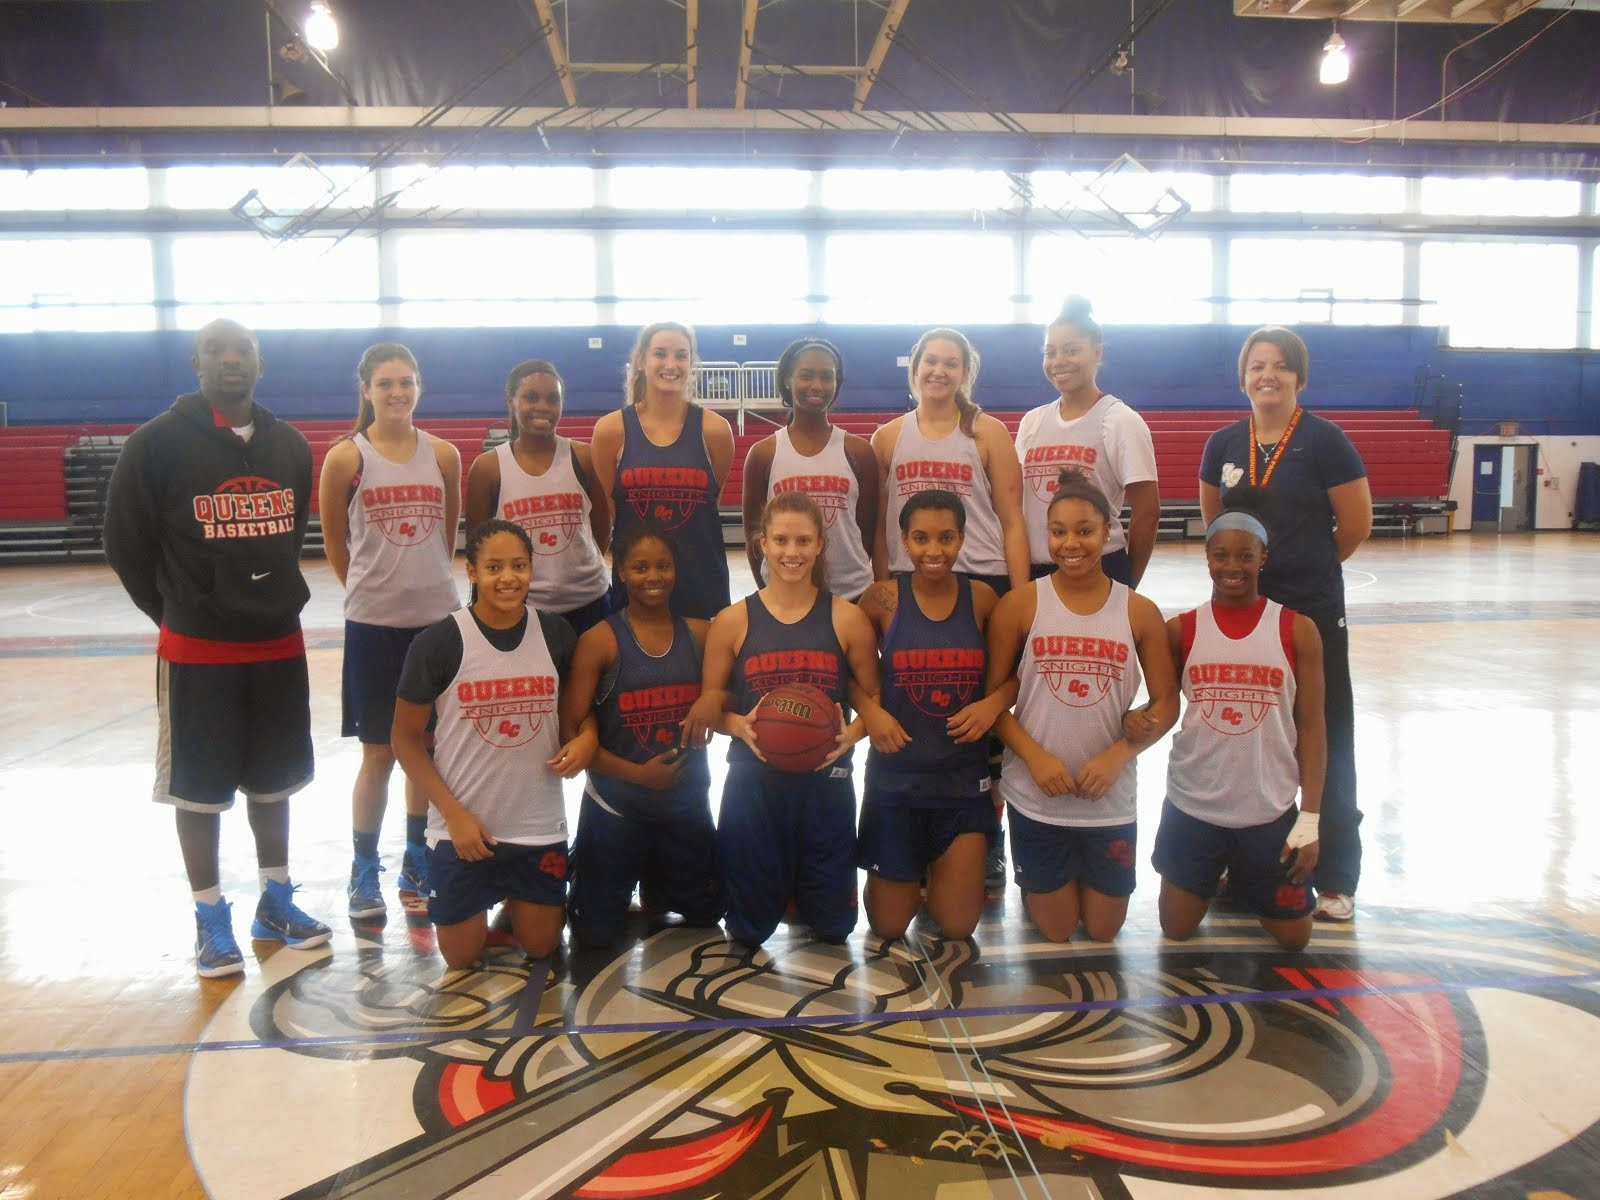 QC WOMEN'S BASKETBALL